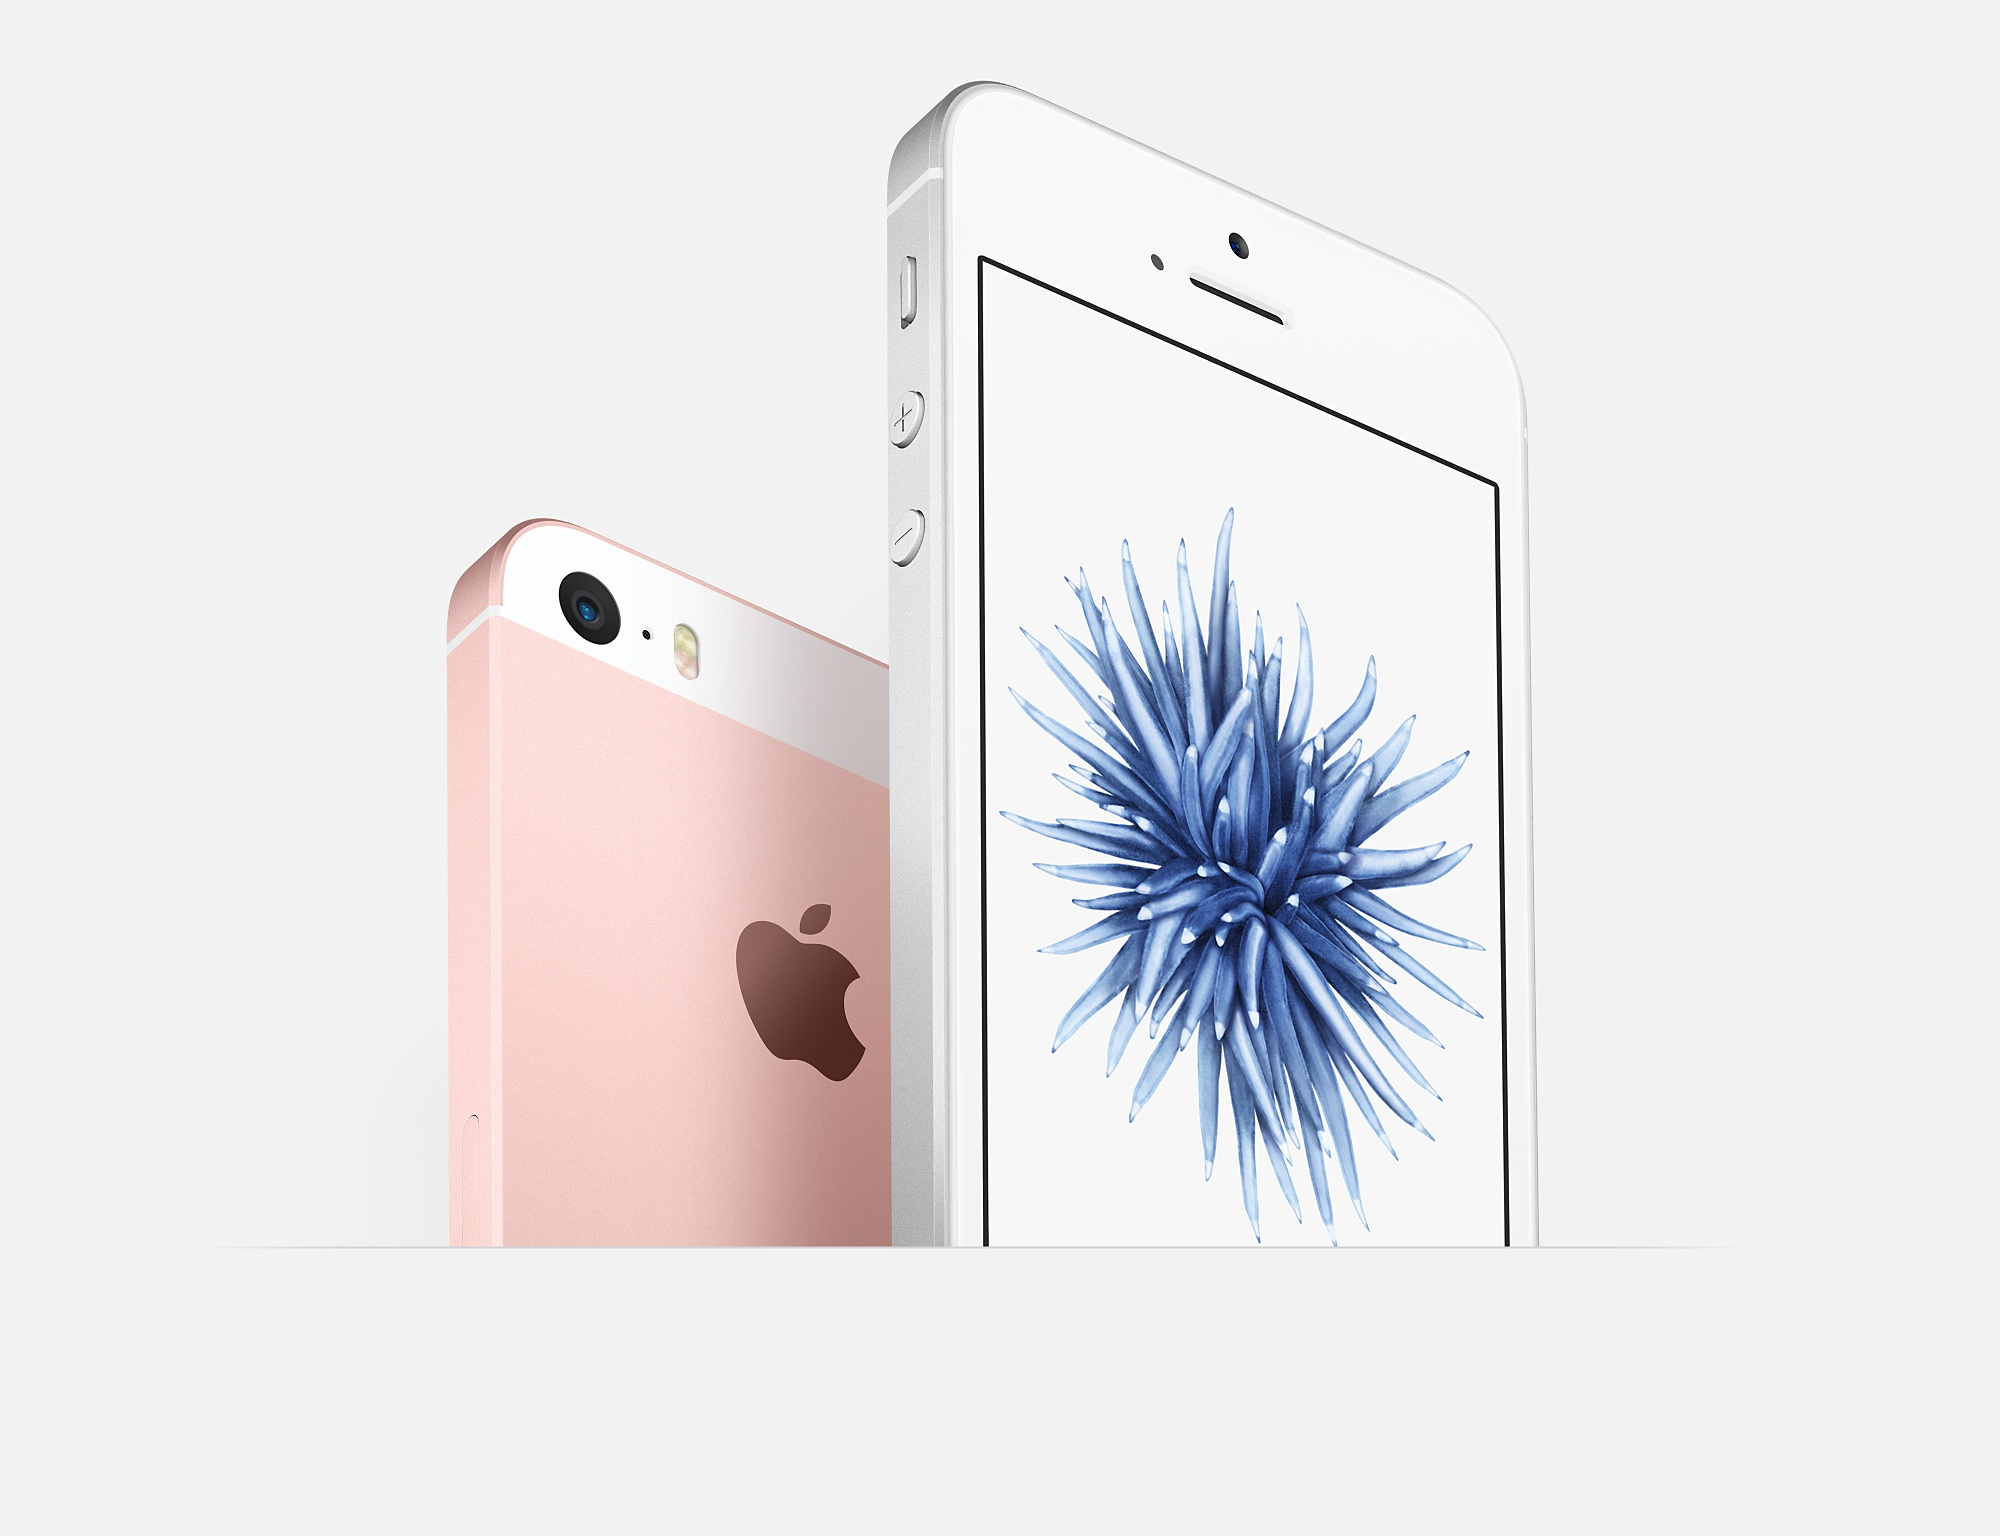 Apple-iPhone-SE---the-official-images-gallery (3)